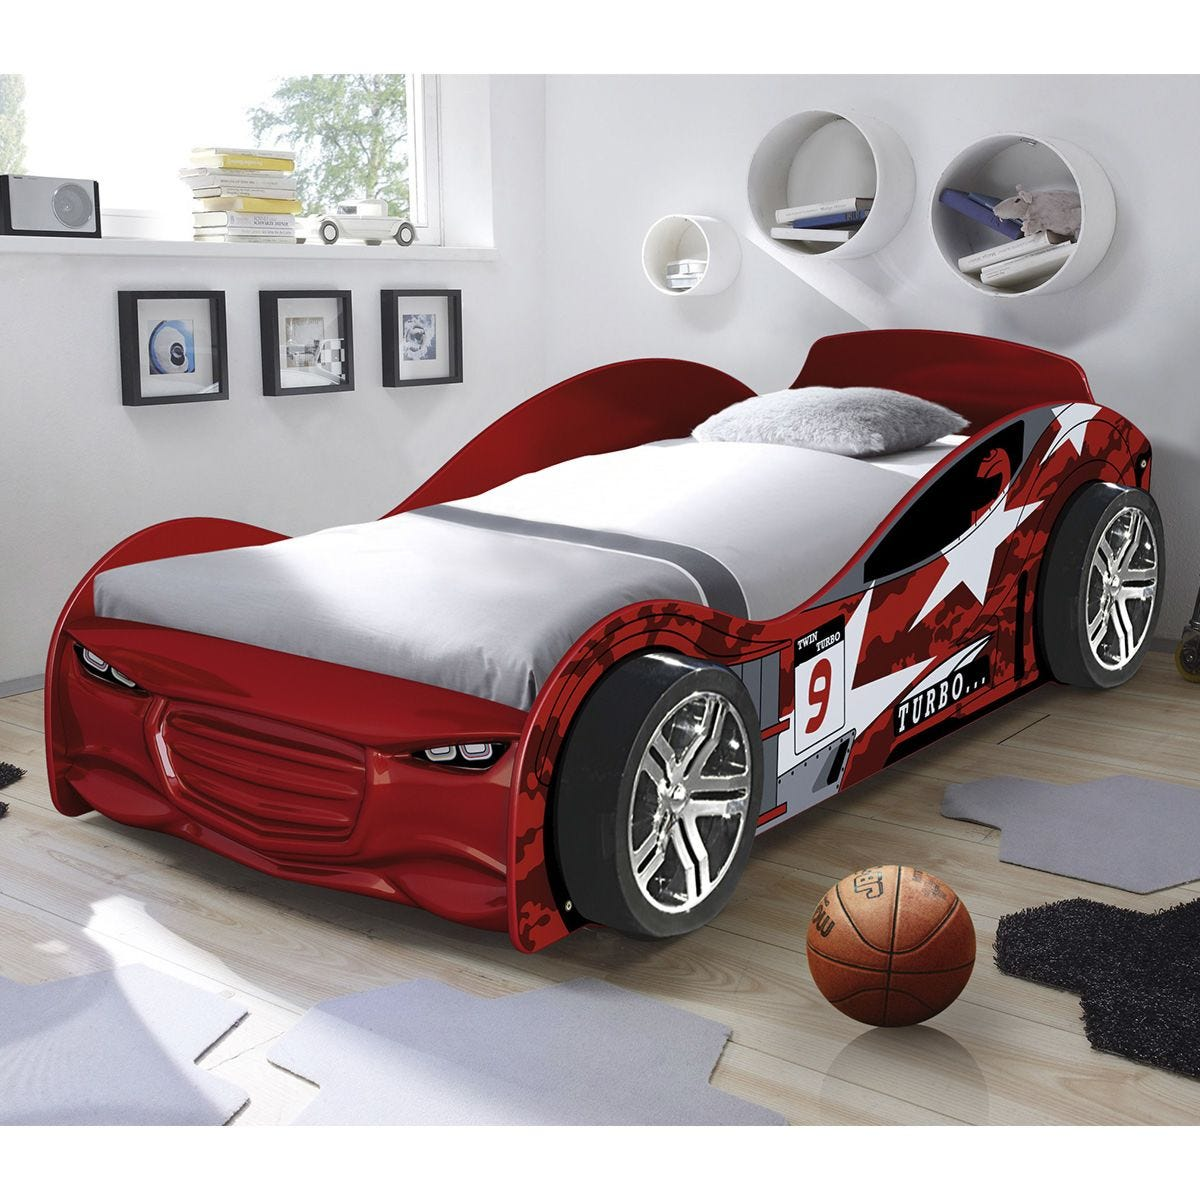 The Artisan Bed Company Twin Turbo Car Bed - Red